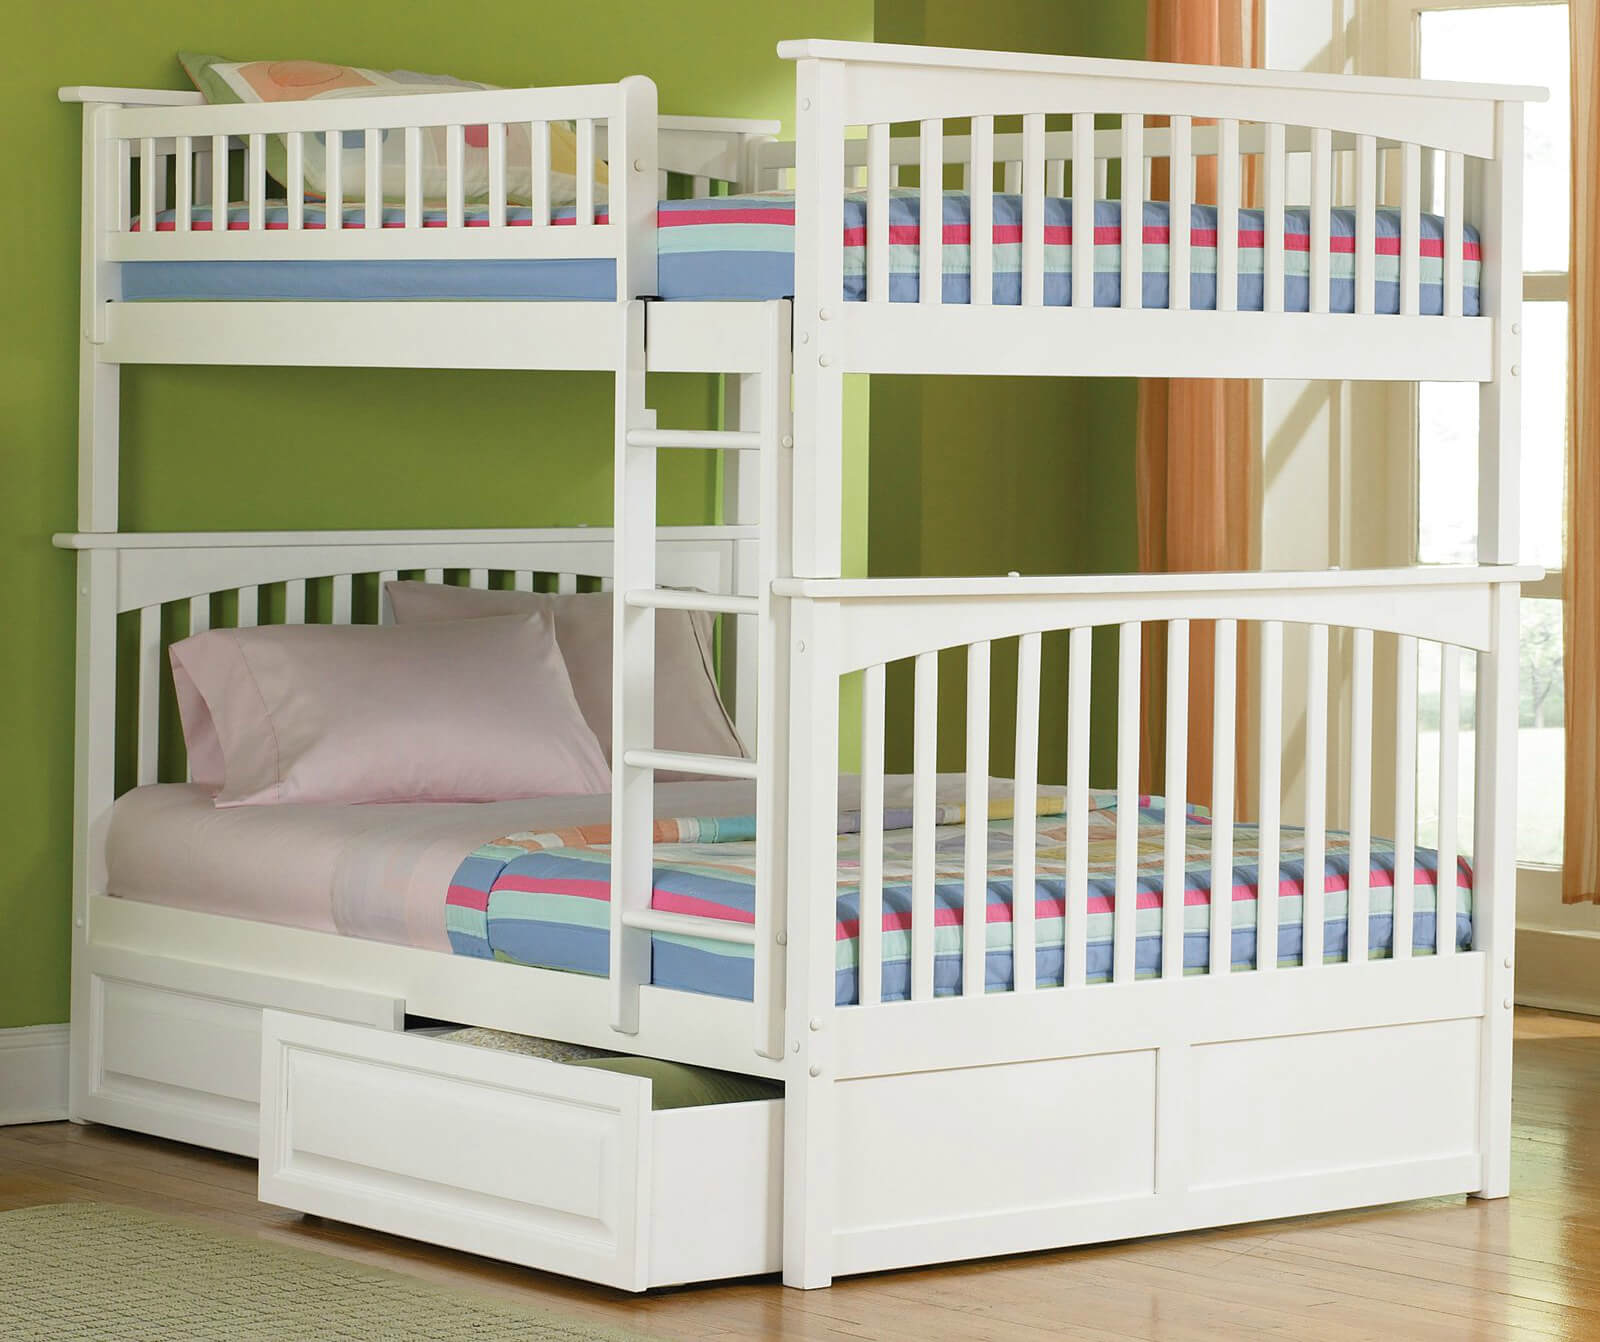 Double bunk beds with slide - White Double Over Double Bunk Bed